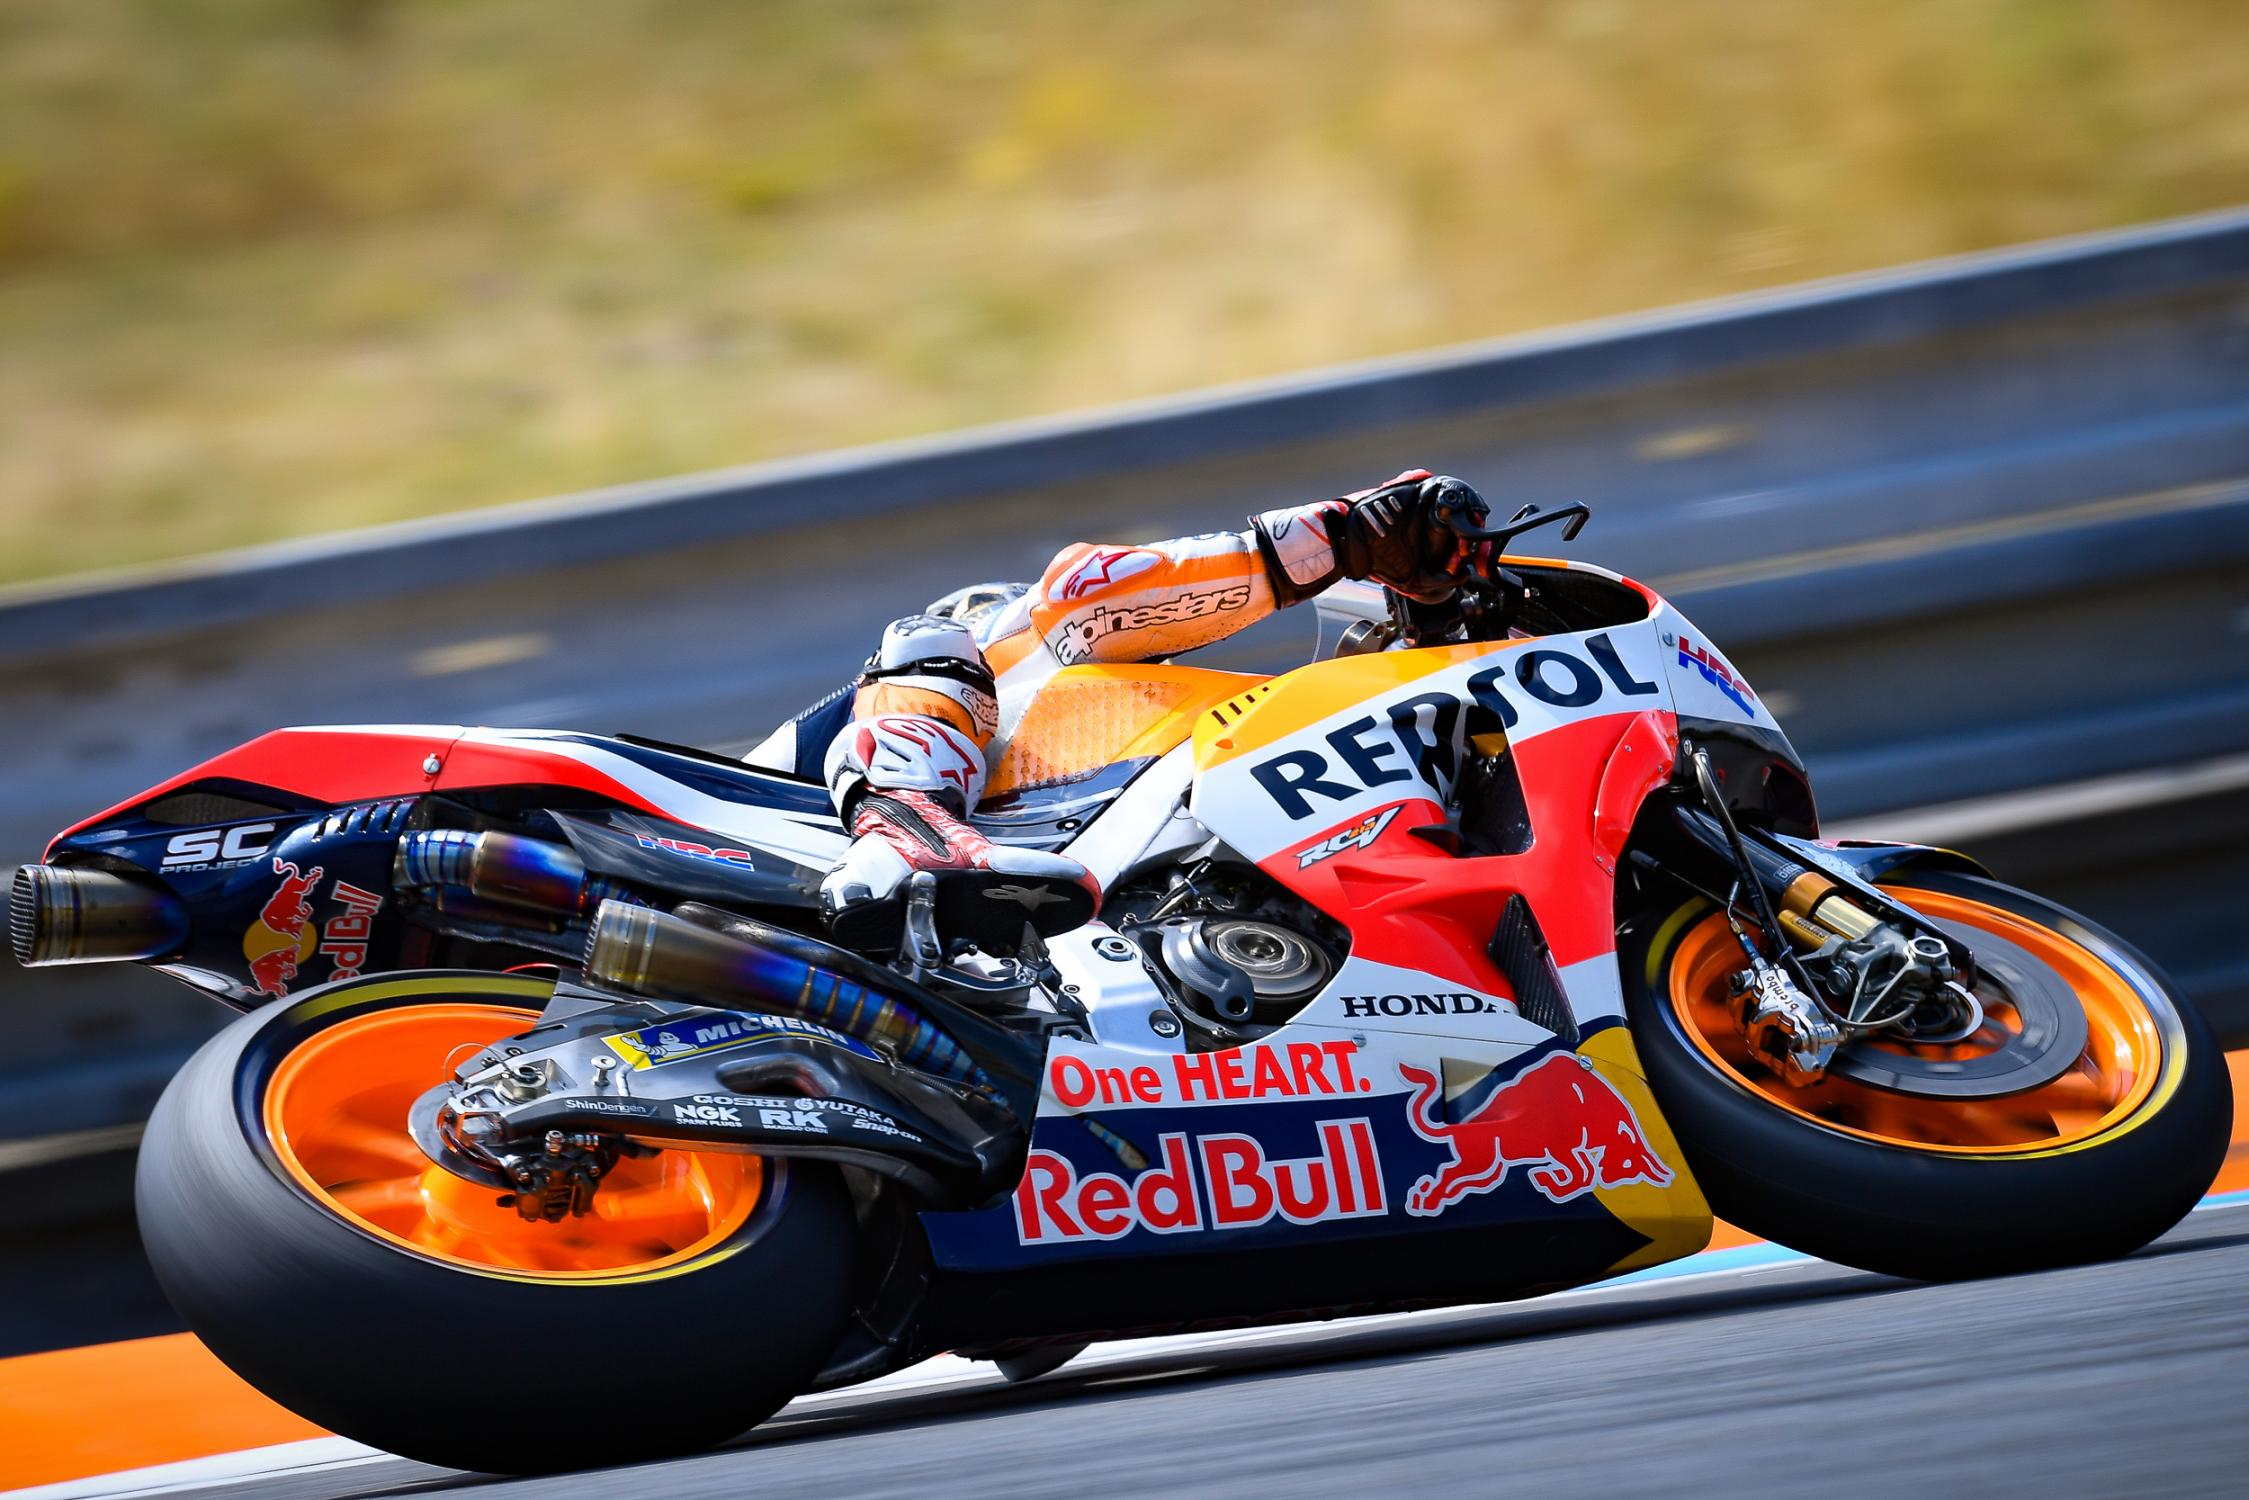 26-dani-pedrosa-esp_ds53367.gallery_full_top_fullscreen.jpg